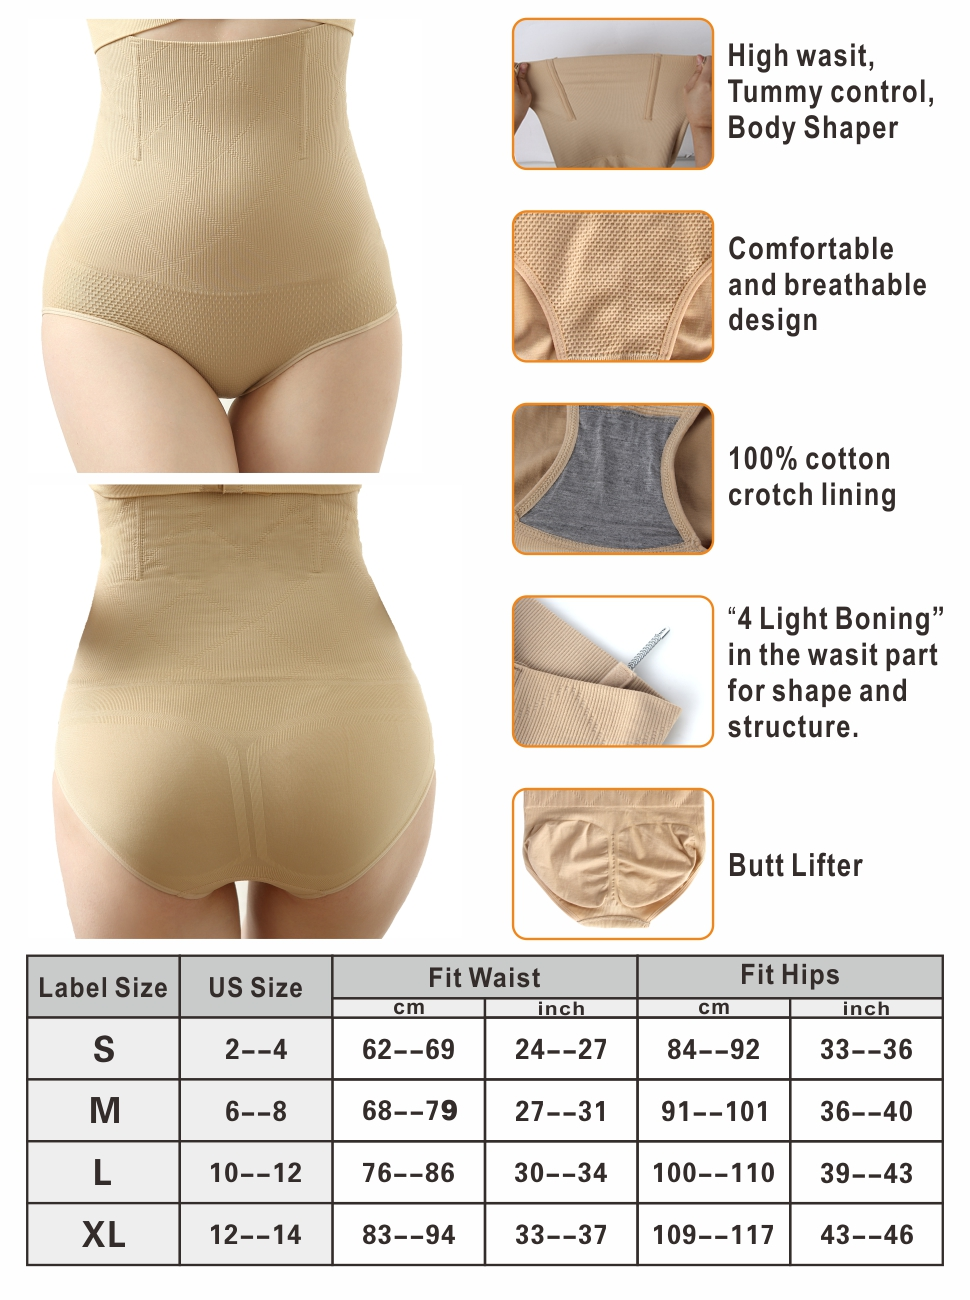 iLoveSIA High Waist C-Section Recovery Slimming Underwear Tummy Control Panties